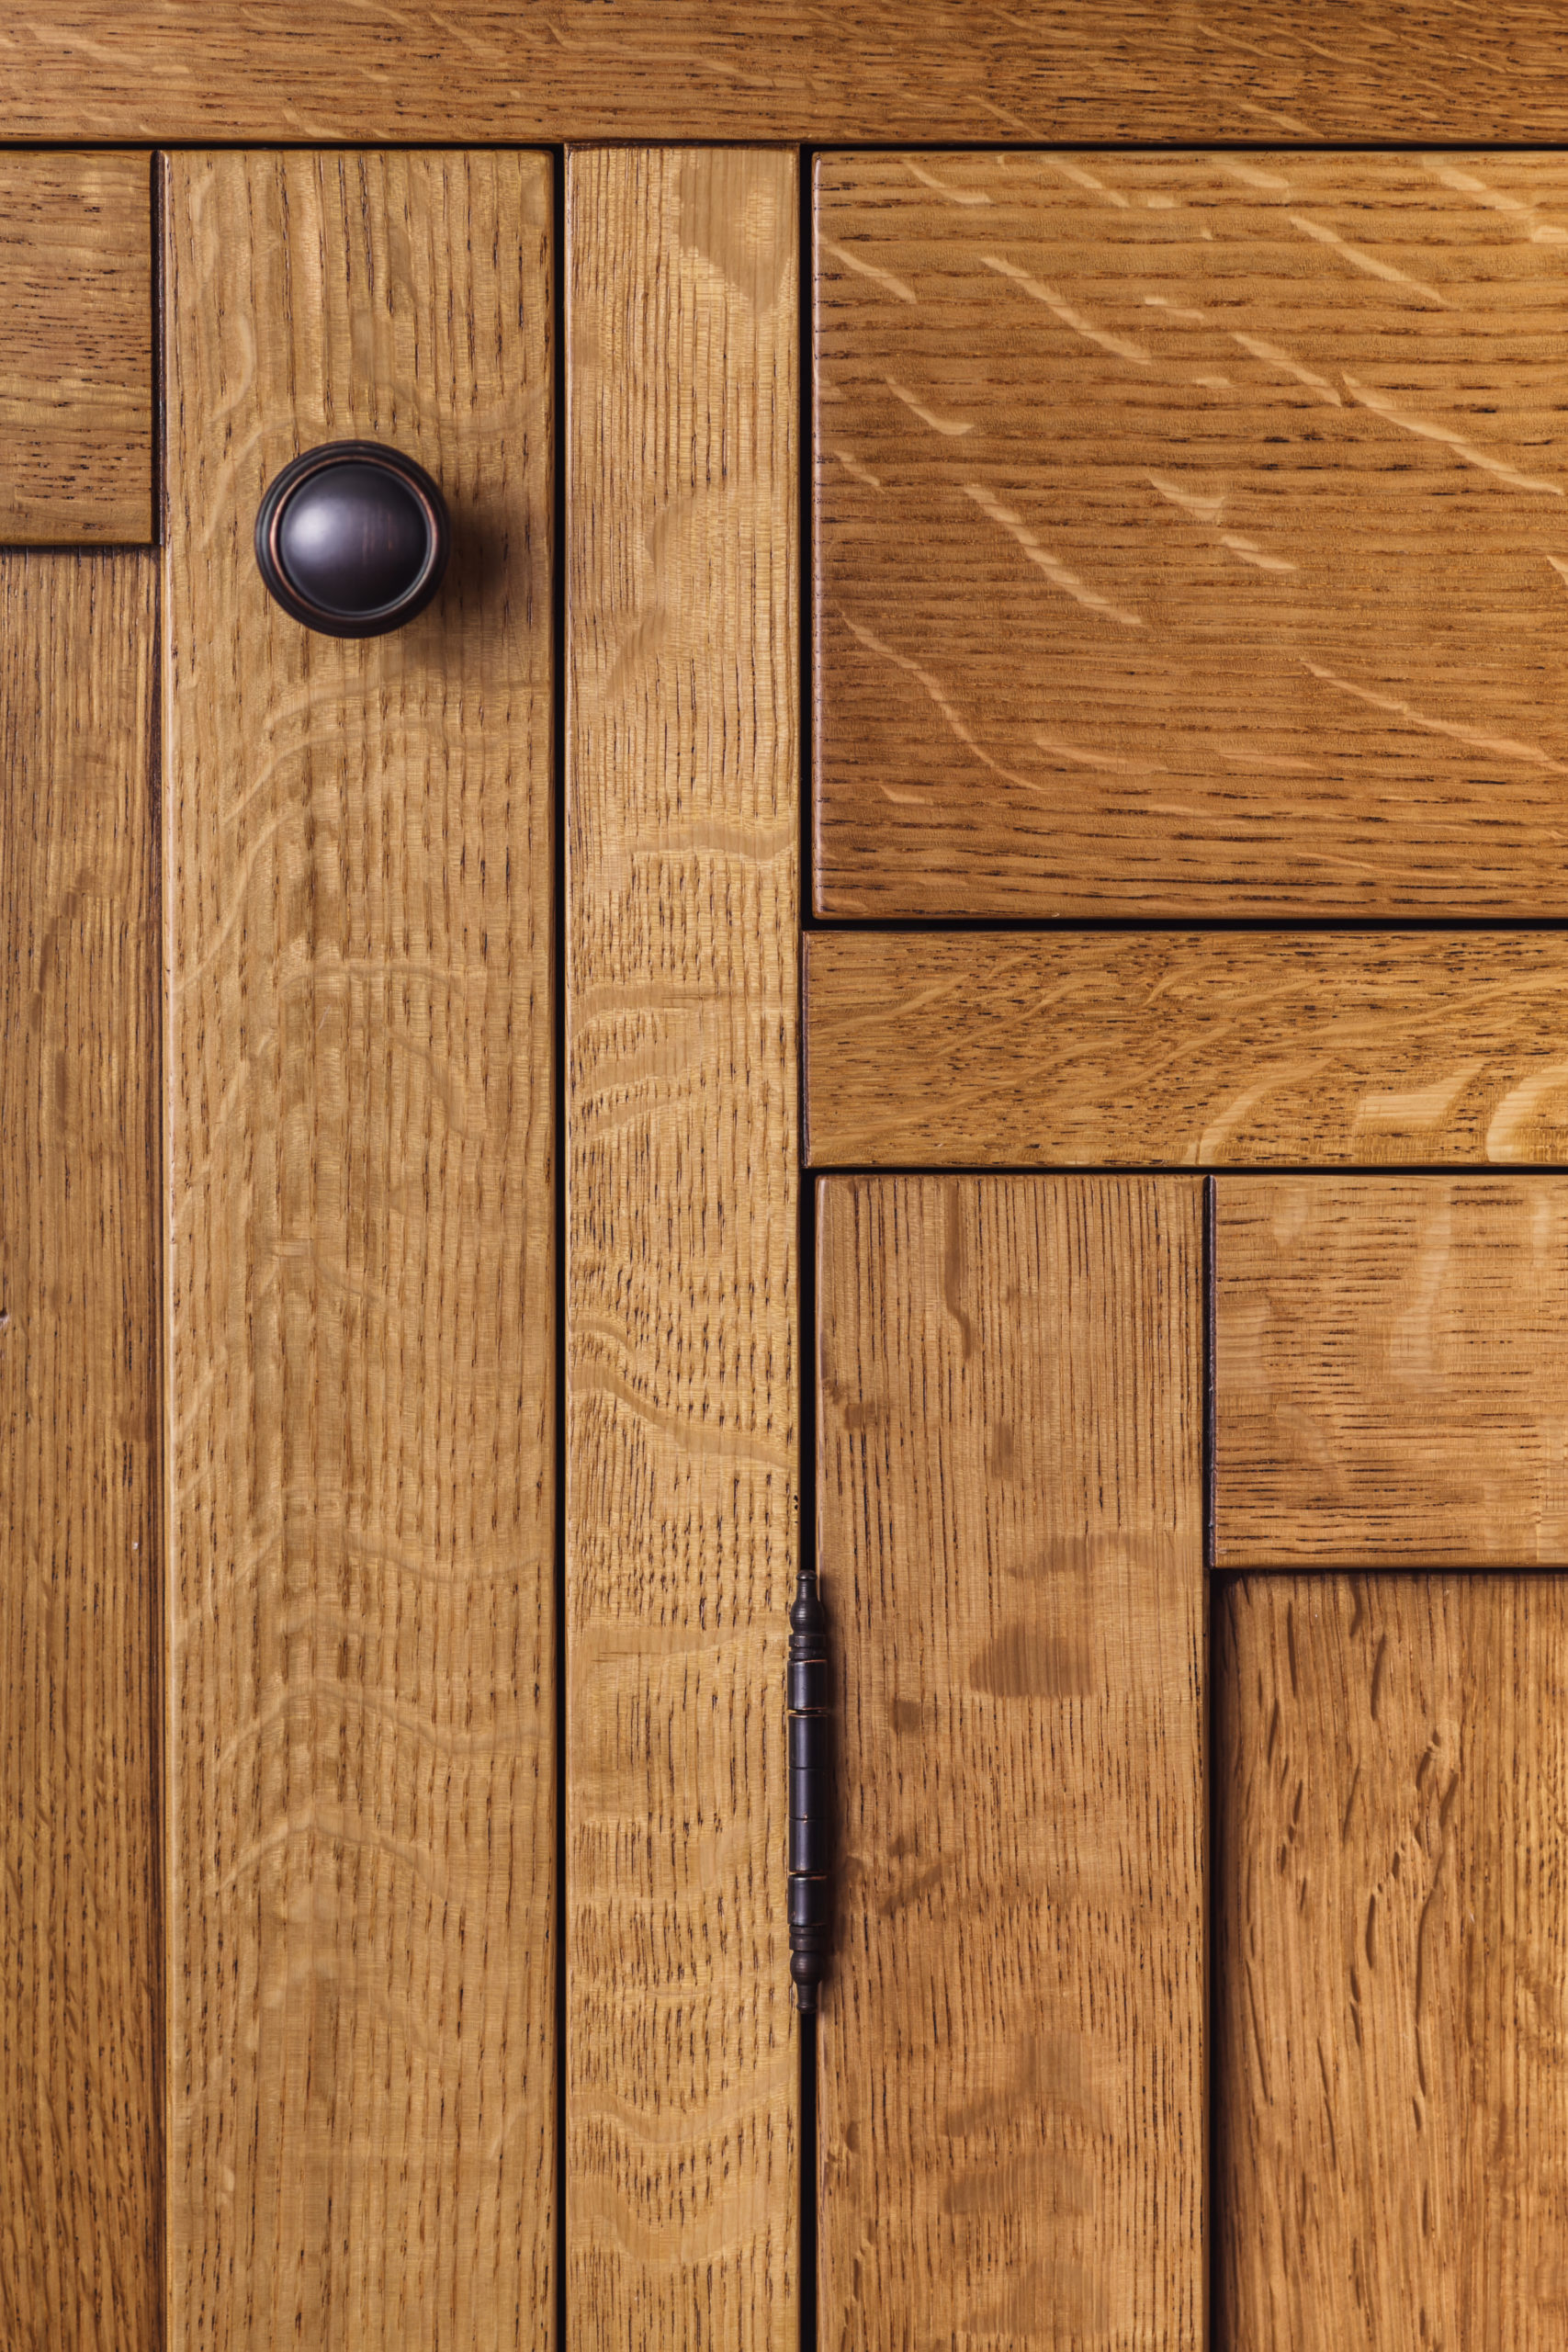 10 Cabinet Door Styles to Consider for Your Kitchen